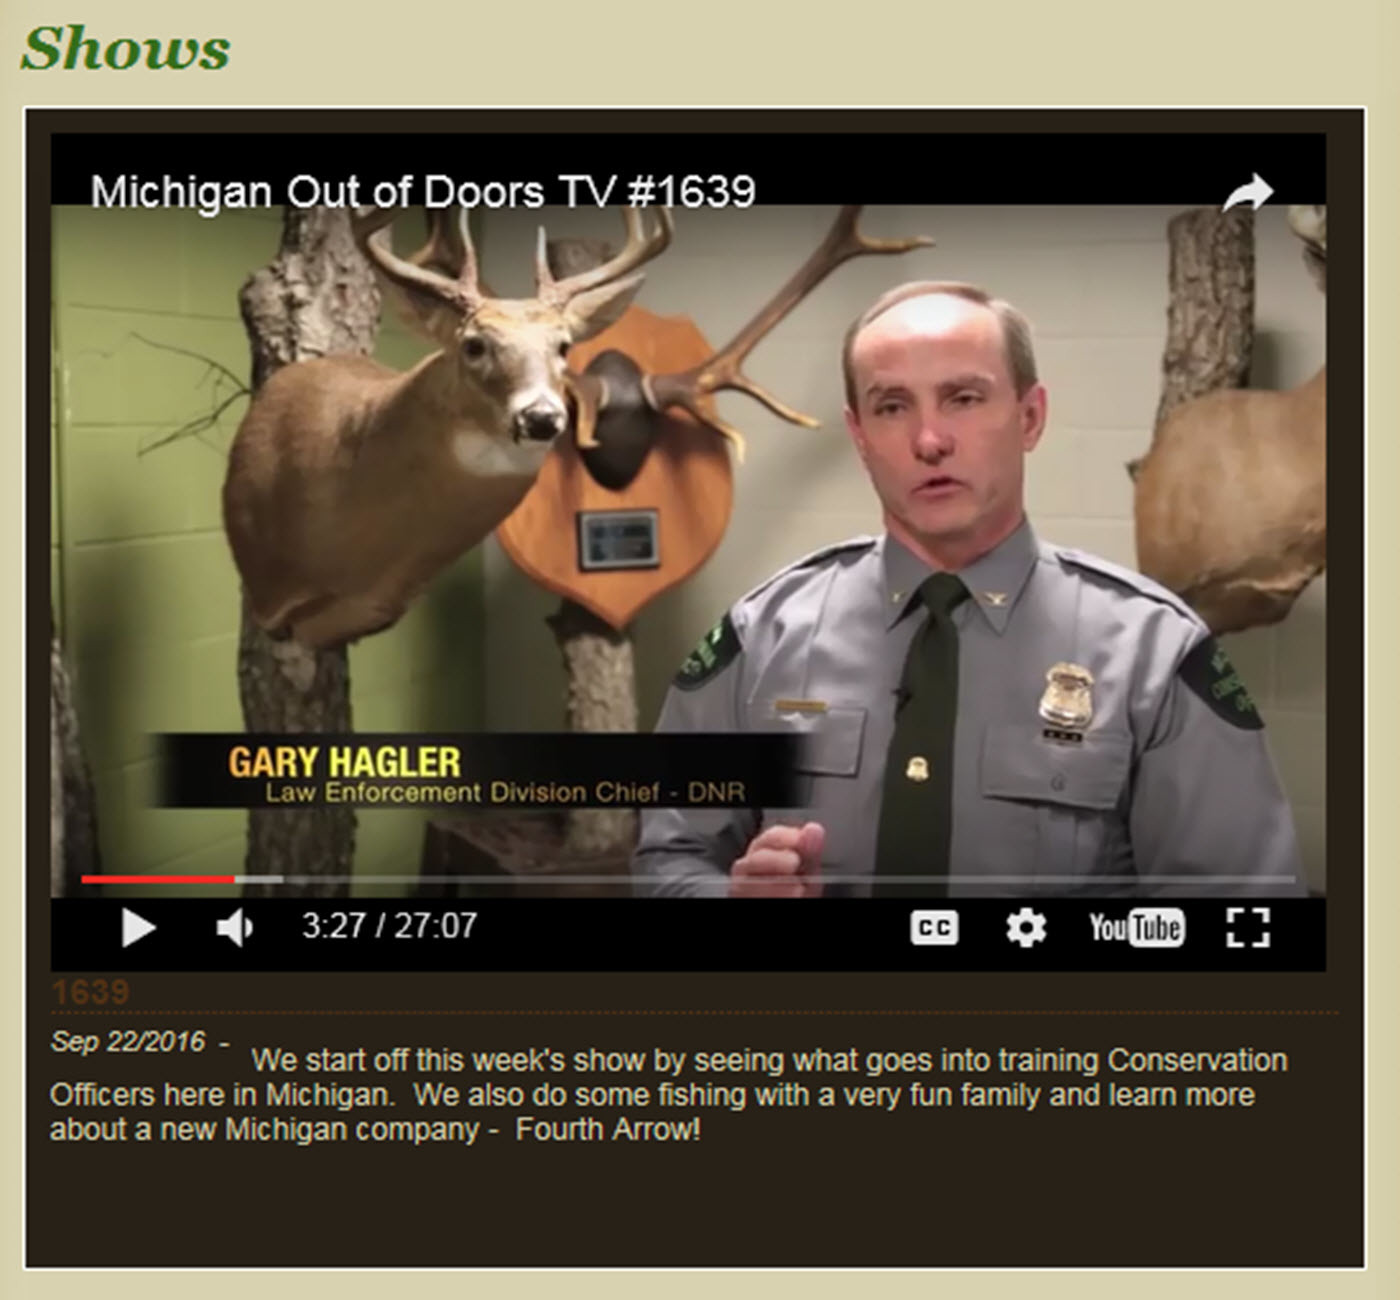 A screen capture shows an episode of Michigan Out-of-Doors television from earlier this year about the Michigan conservation officer academy.